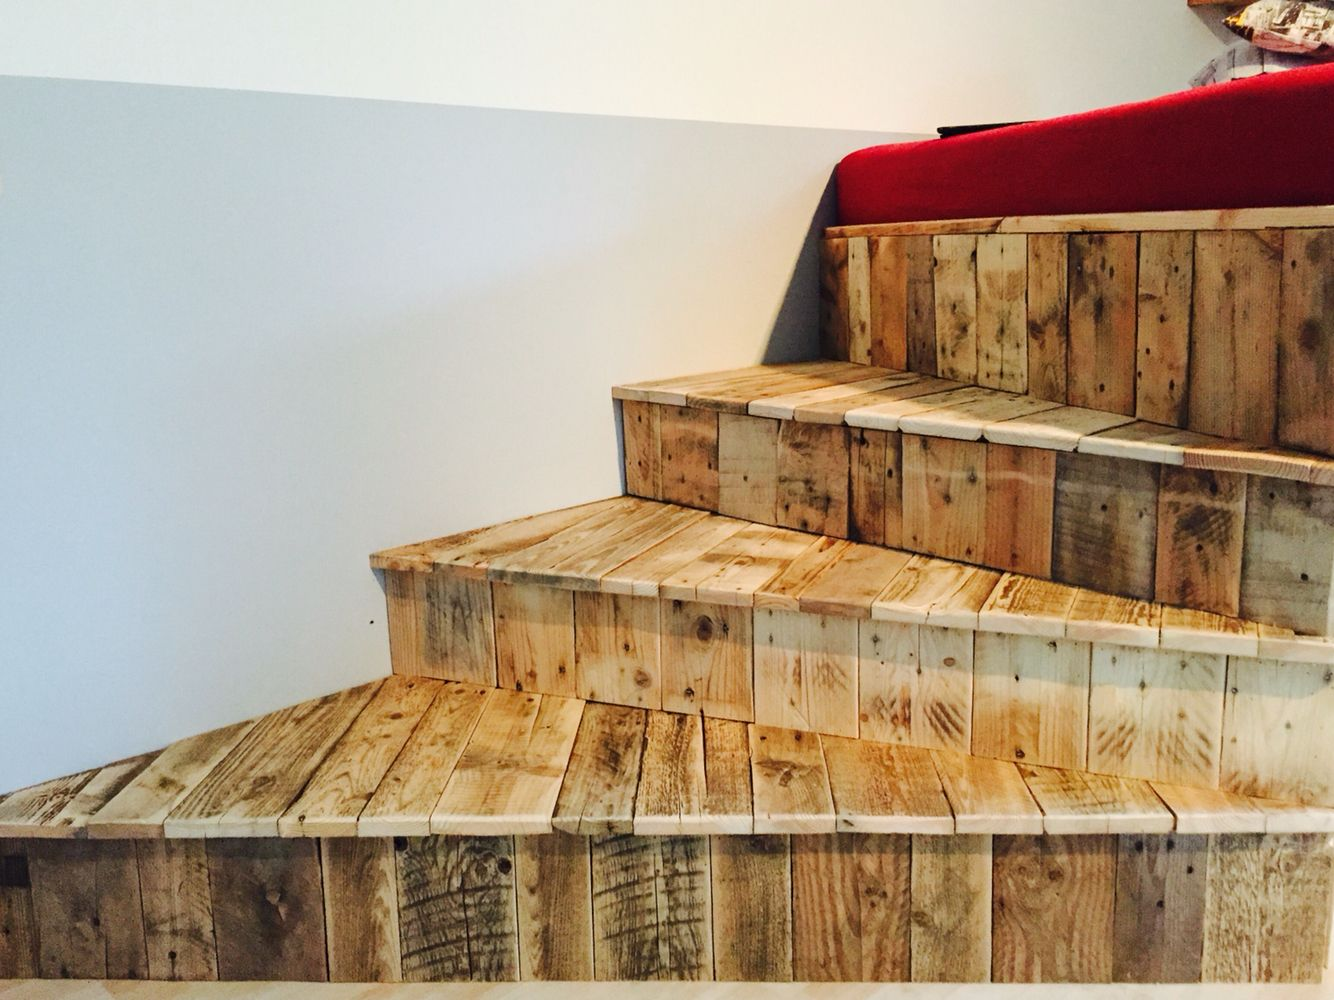 Regale Aus Palettenholz Treppe Zum Hochbett . . . Palettenholz | Pallet Projects, Decor, Home Decor